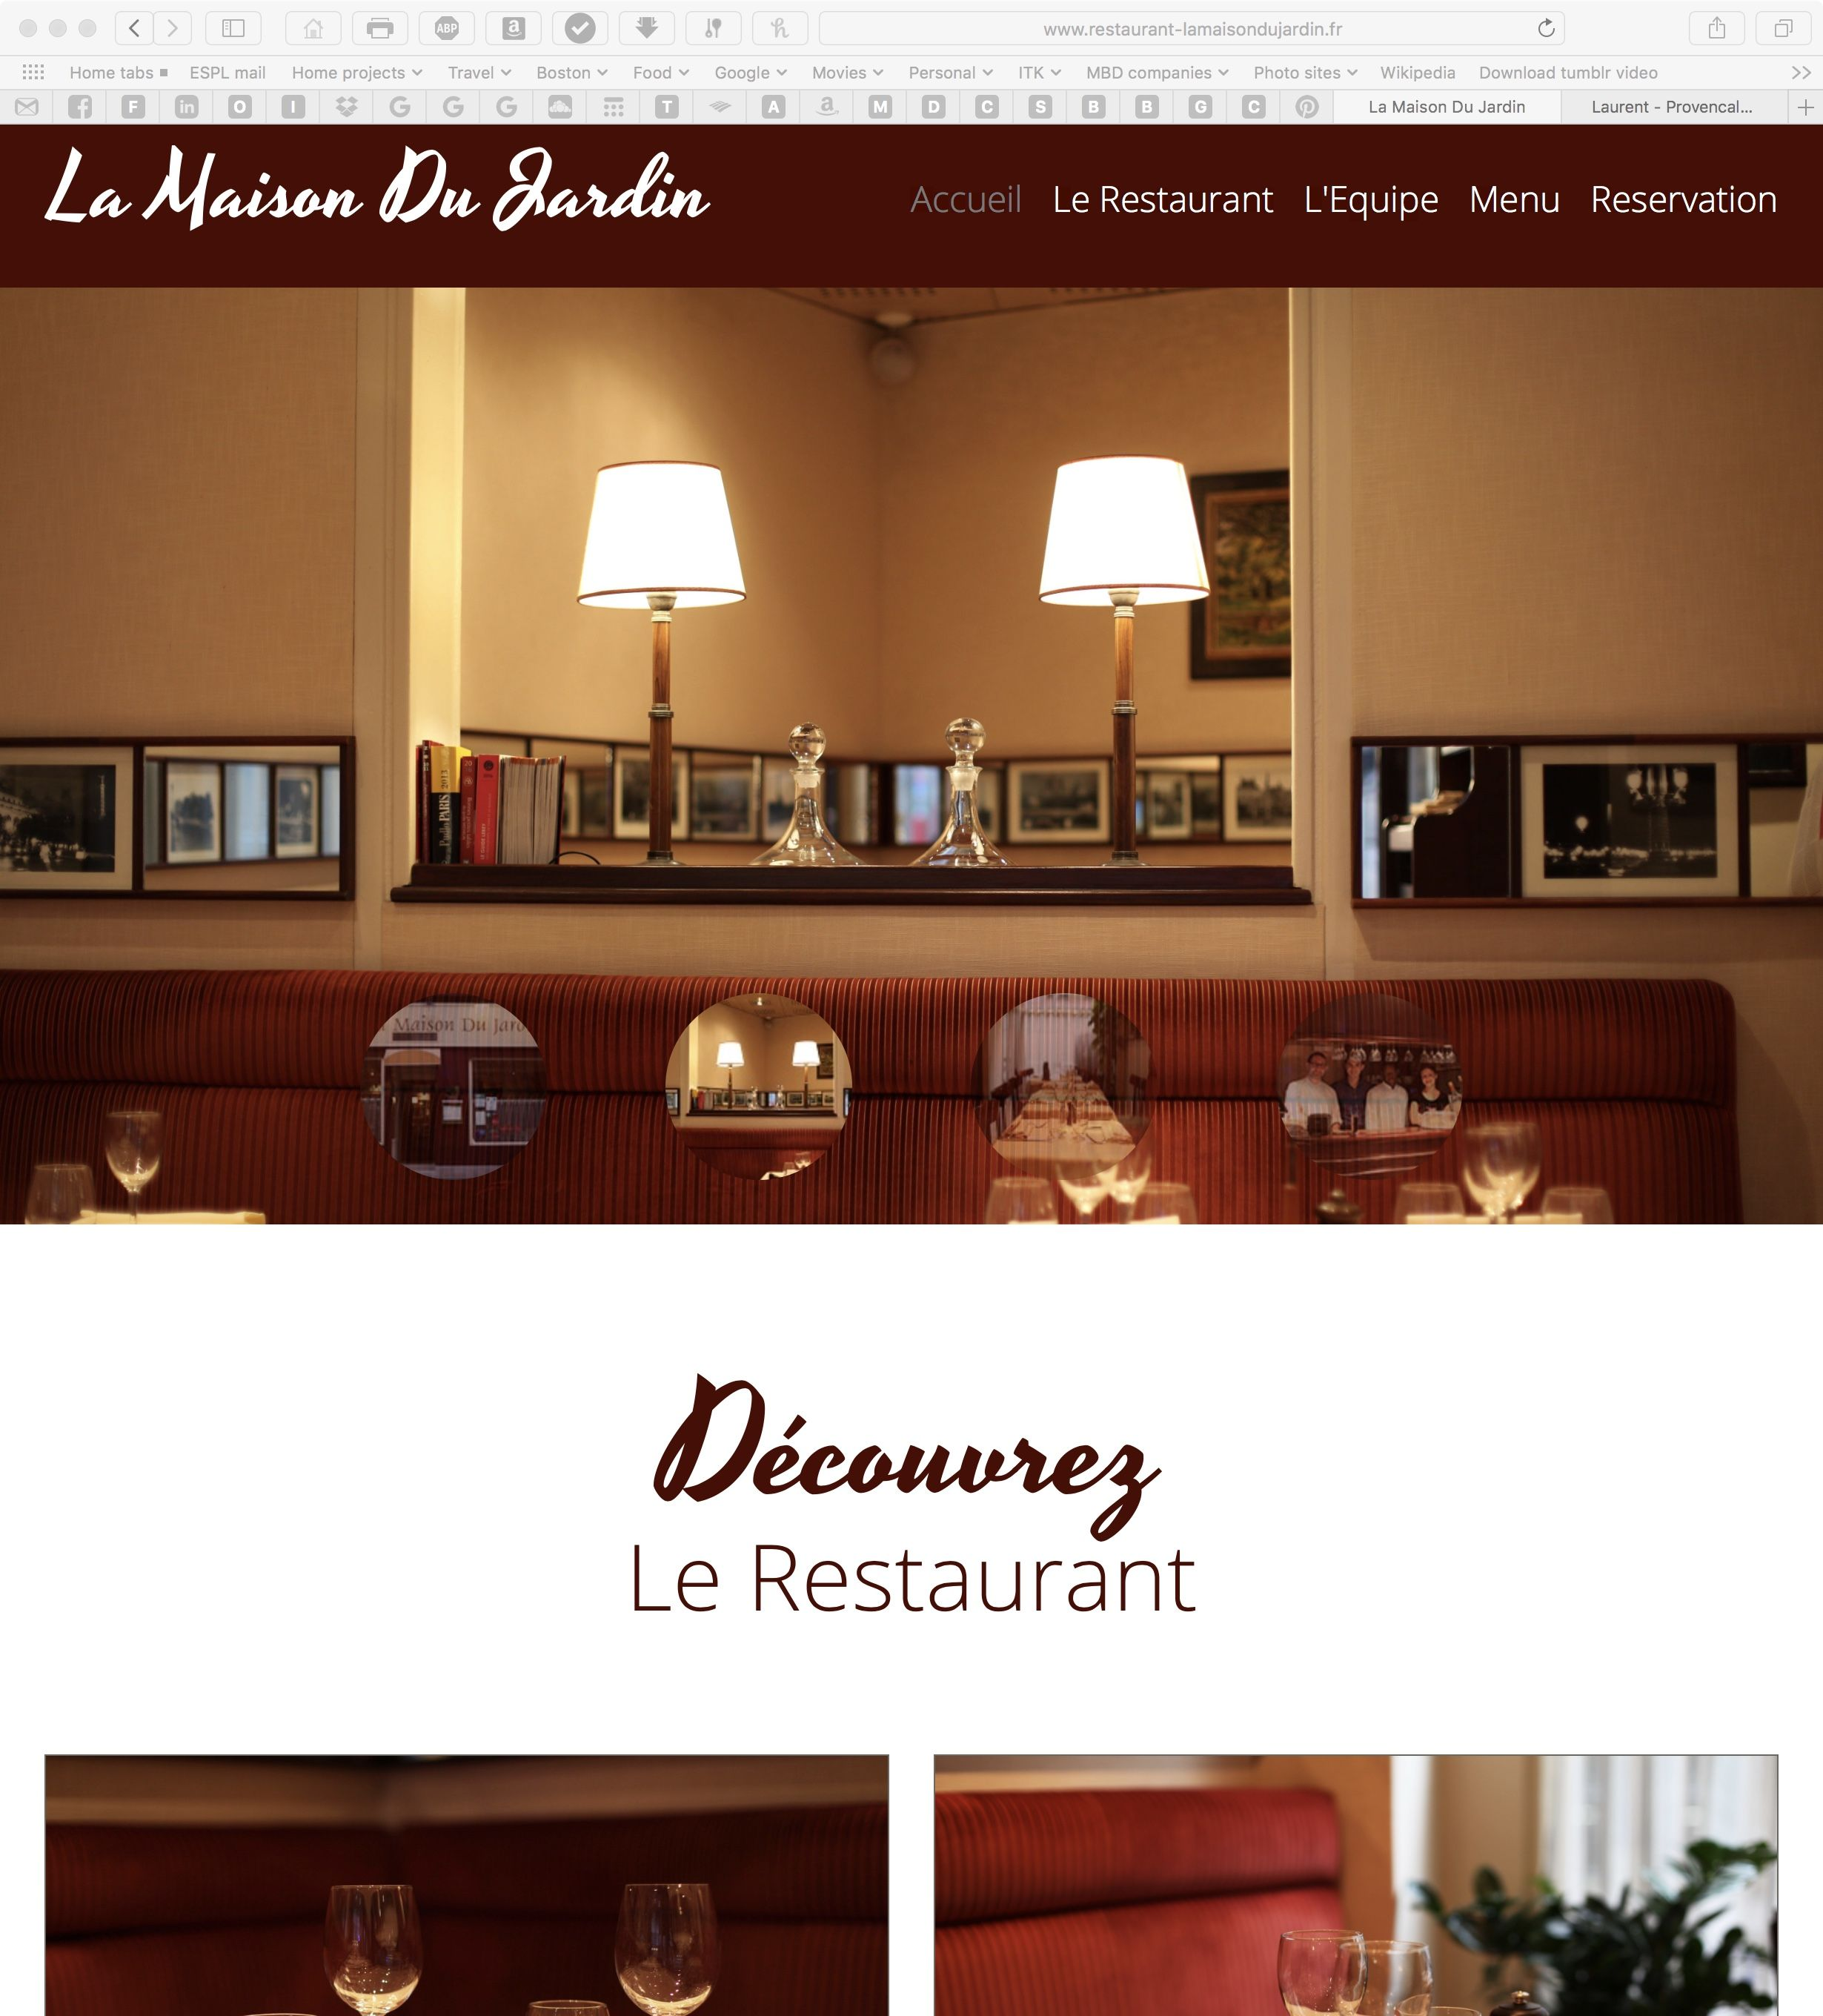 La Maison du Jardin restaurant in Paris | Paris 2018 | Pinterest